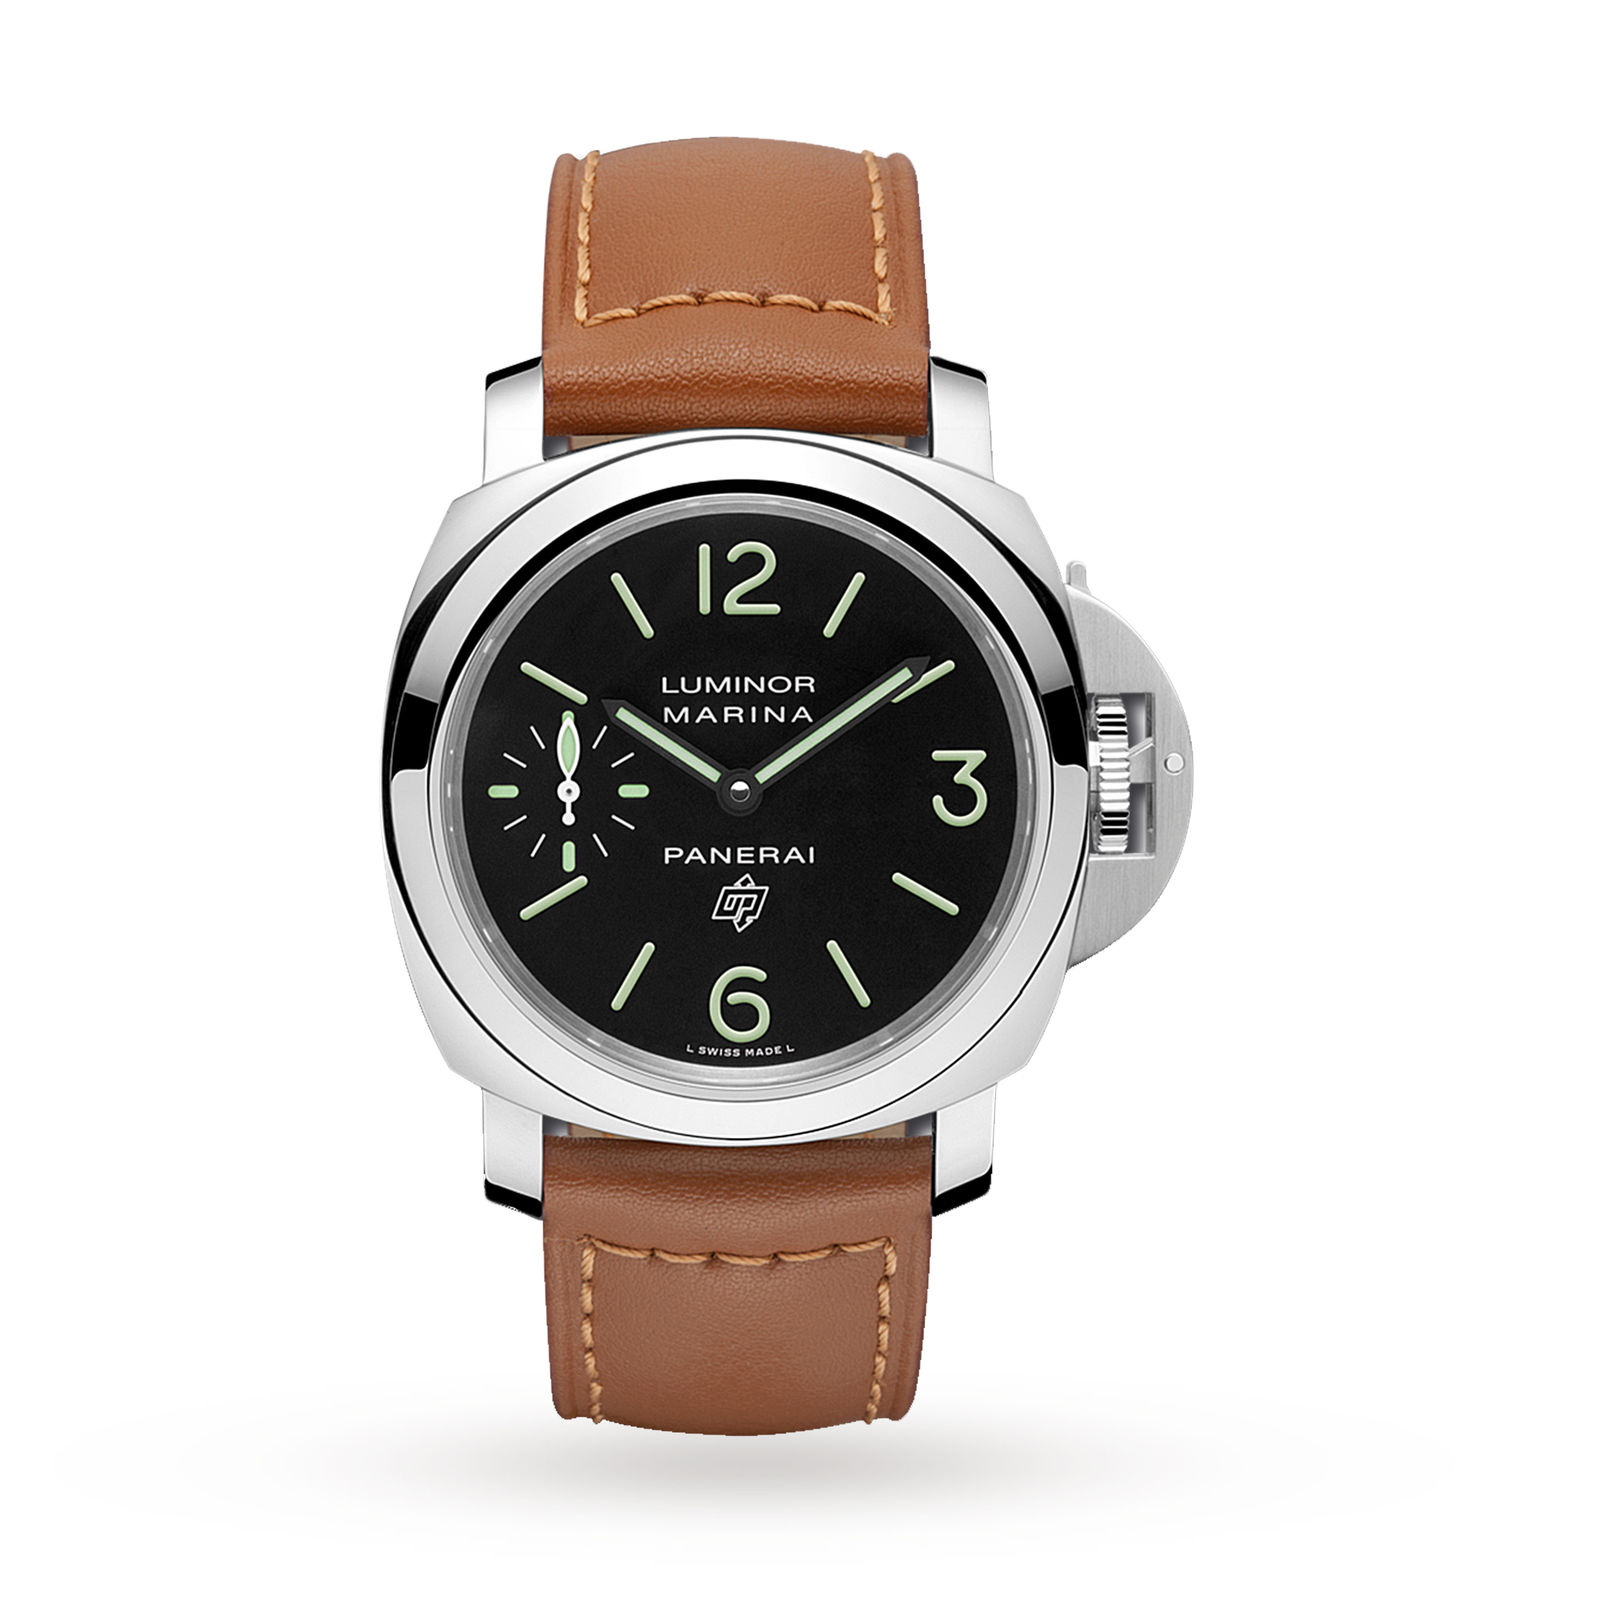 panerai image amj category watches background